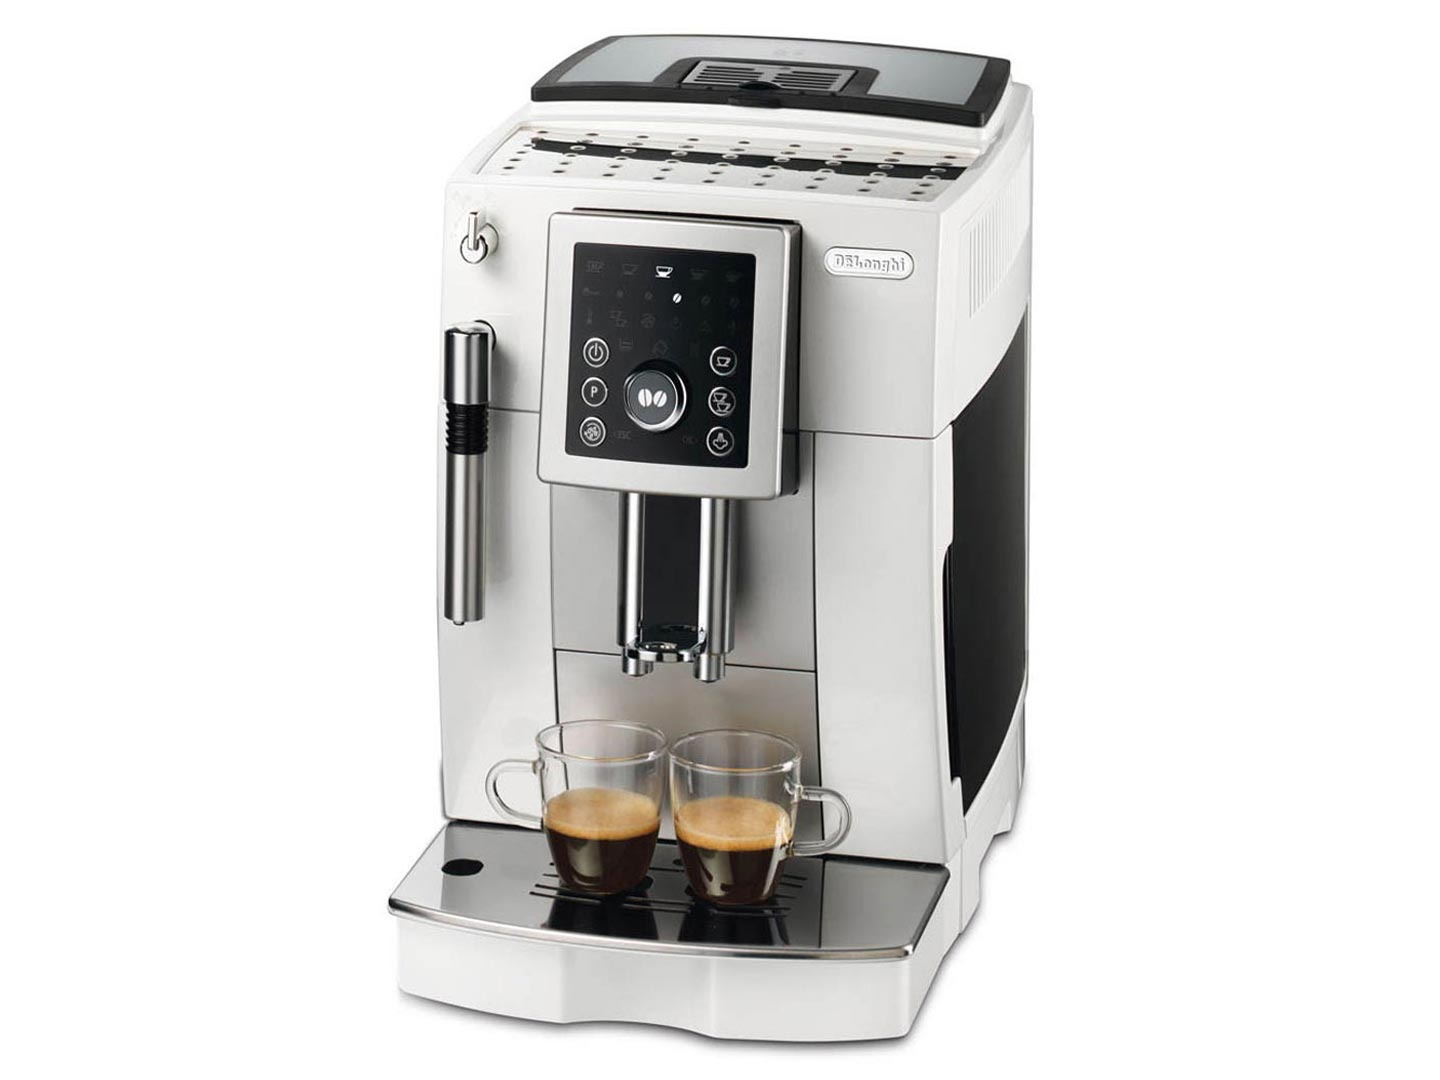 delonghi coffee machine ecam23210w home clearance. Black Bedroom Furniture Sets. Home Design Ideas